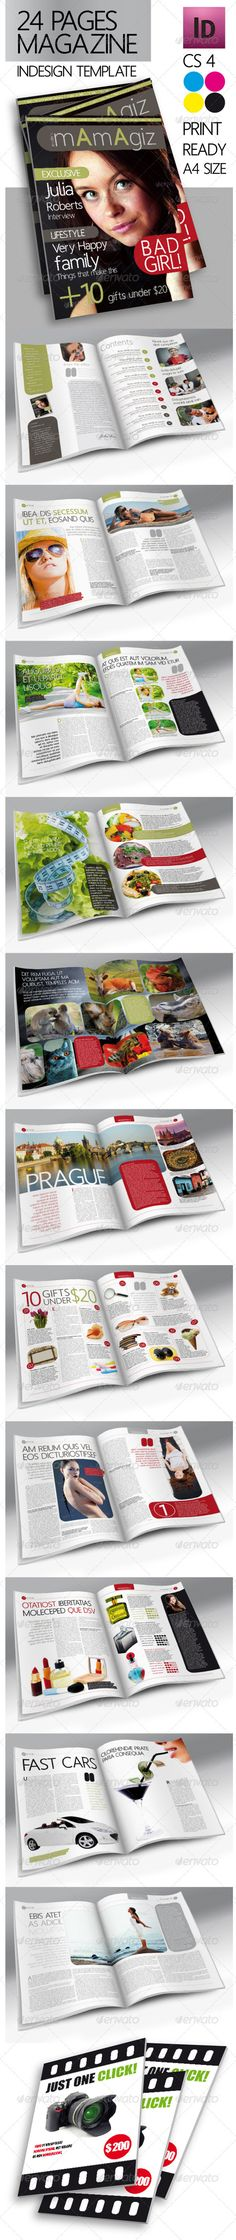 24 Pages Modern Magazine InDesign Template